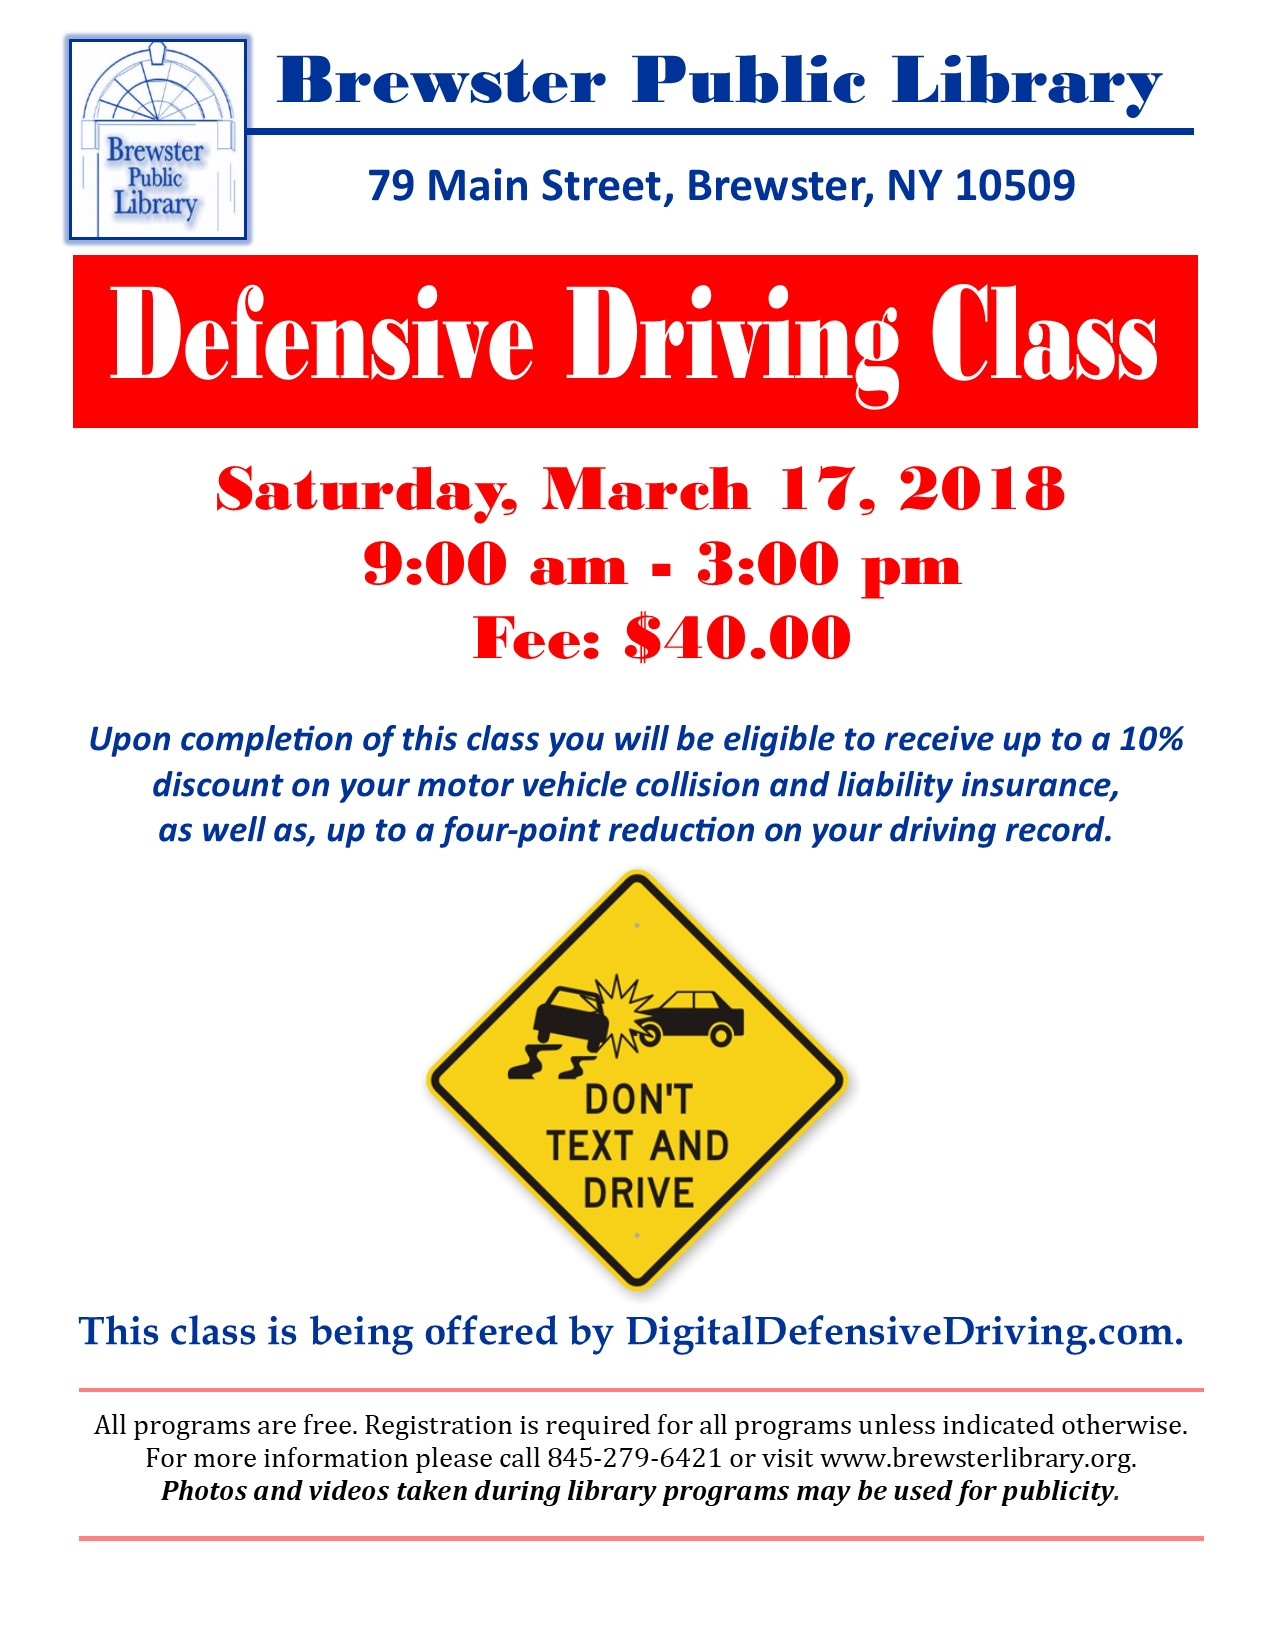 March 17 Defensive Driving Course At Brewster Library